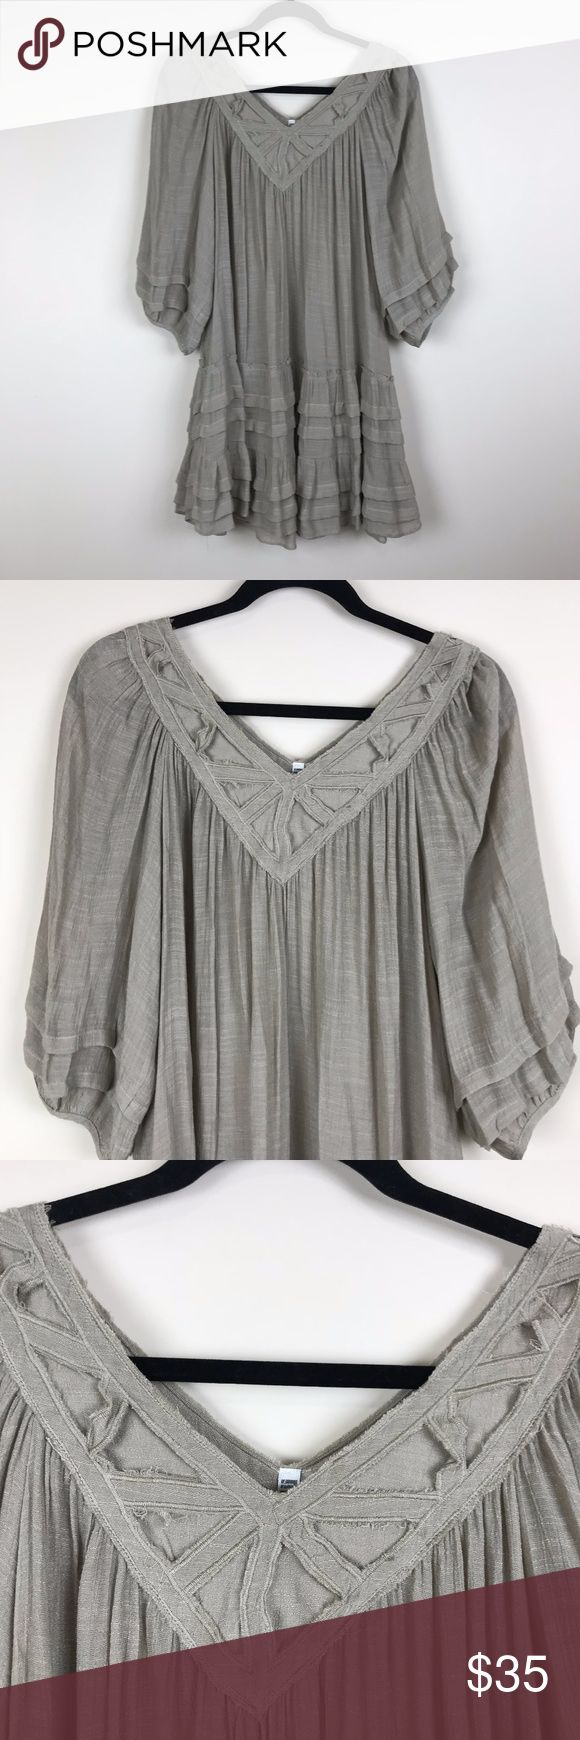 NWOT MONO RENO LARGE BOHO DRESS GORGEOUS FUN BOHO DRESS BY MONO RENO. LARGE. RUFFLE HEM AND SLEEVES. BELL SLEVES. V NECK WITH CUT OUT DESIGN FRONT AND BACK. SO FLIRTY AND FUN. NEVER WORN. UNIQUE NEUTRAL GREY COLOR. HIPPIE,BOHO,GYPSY,FESTIVAL,URBAN OUTFITTERS,FREE PEOPLE G MONO RENO Dresses Mini